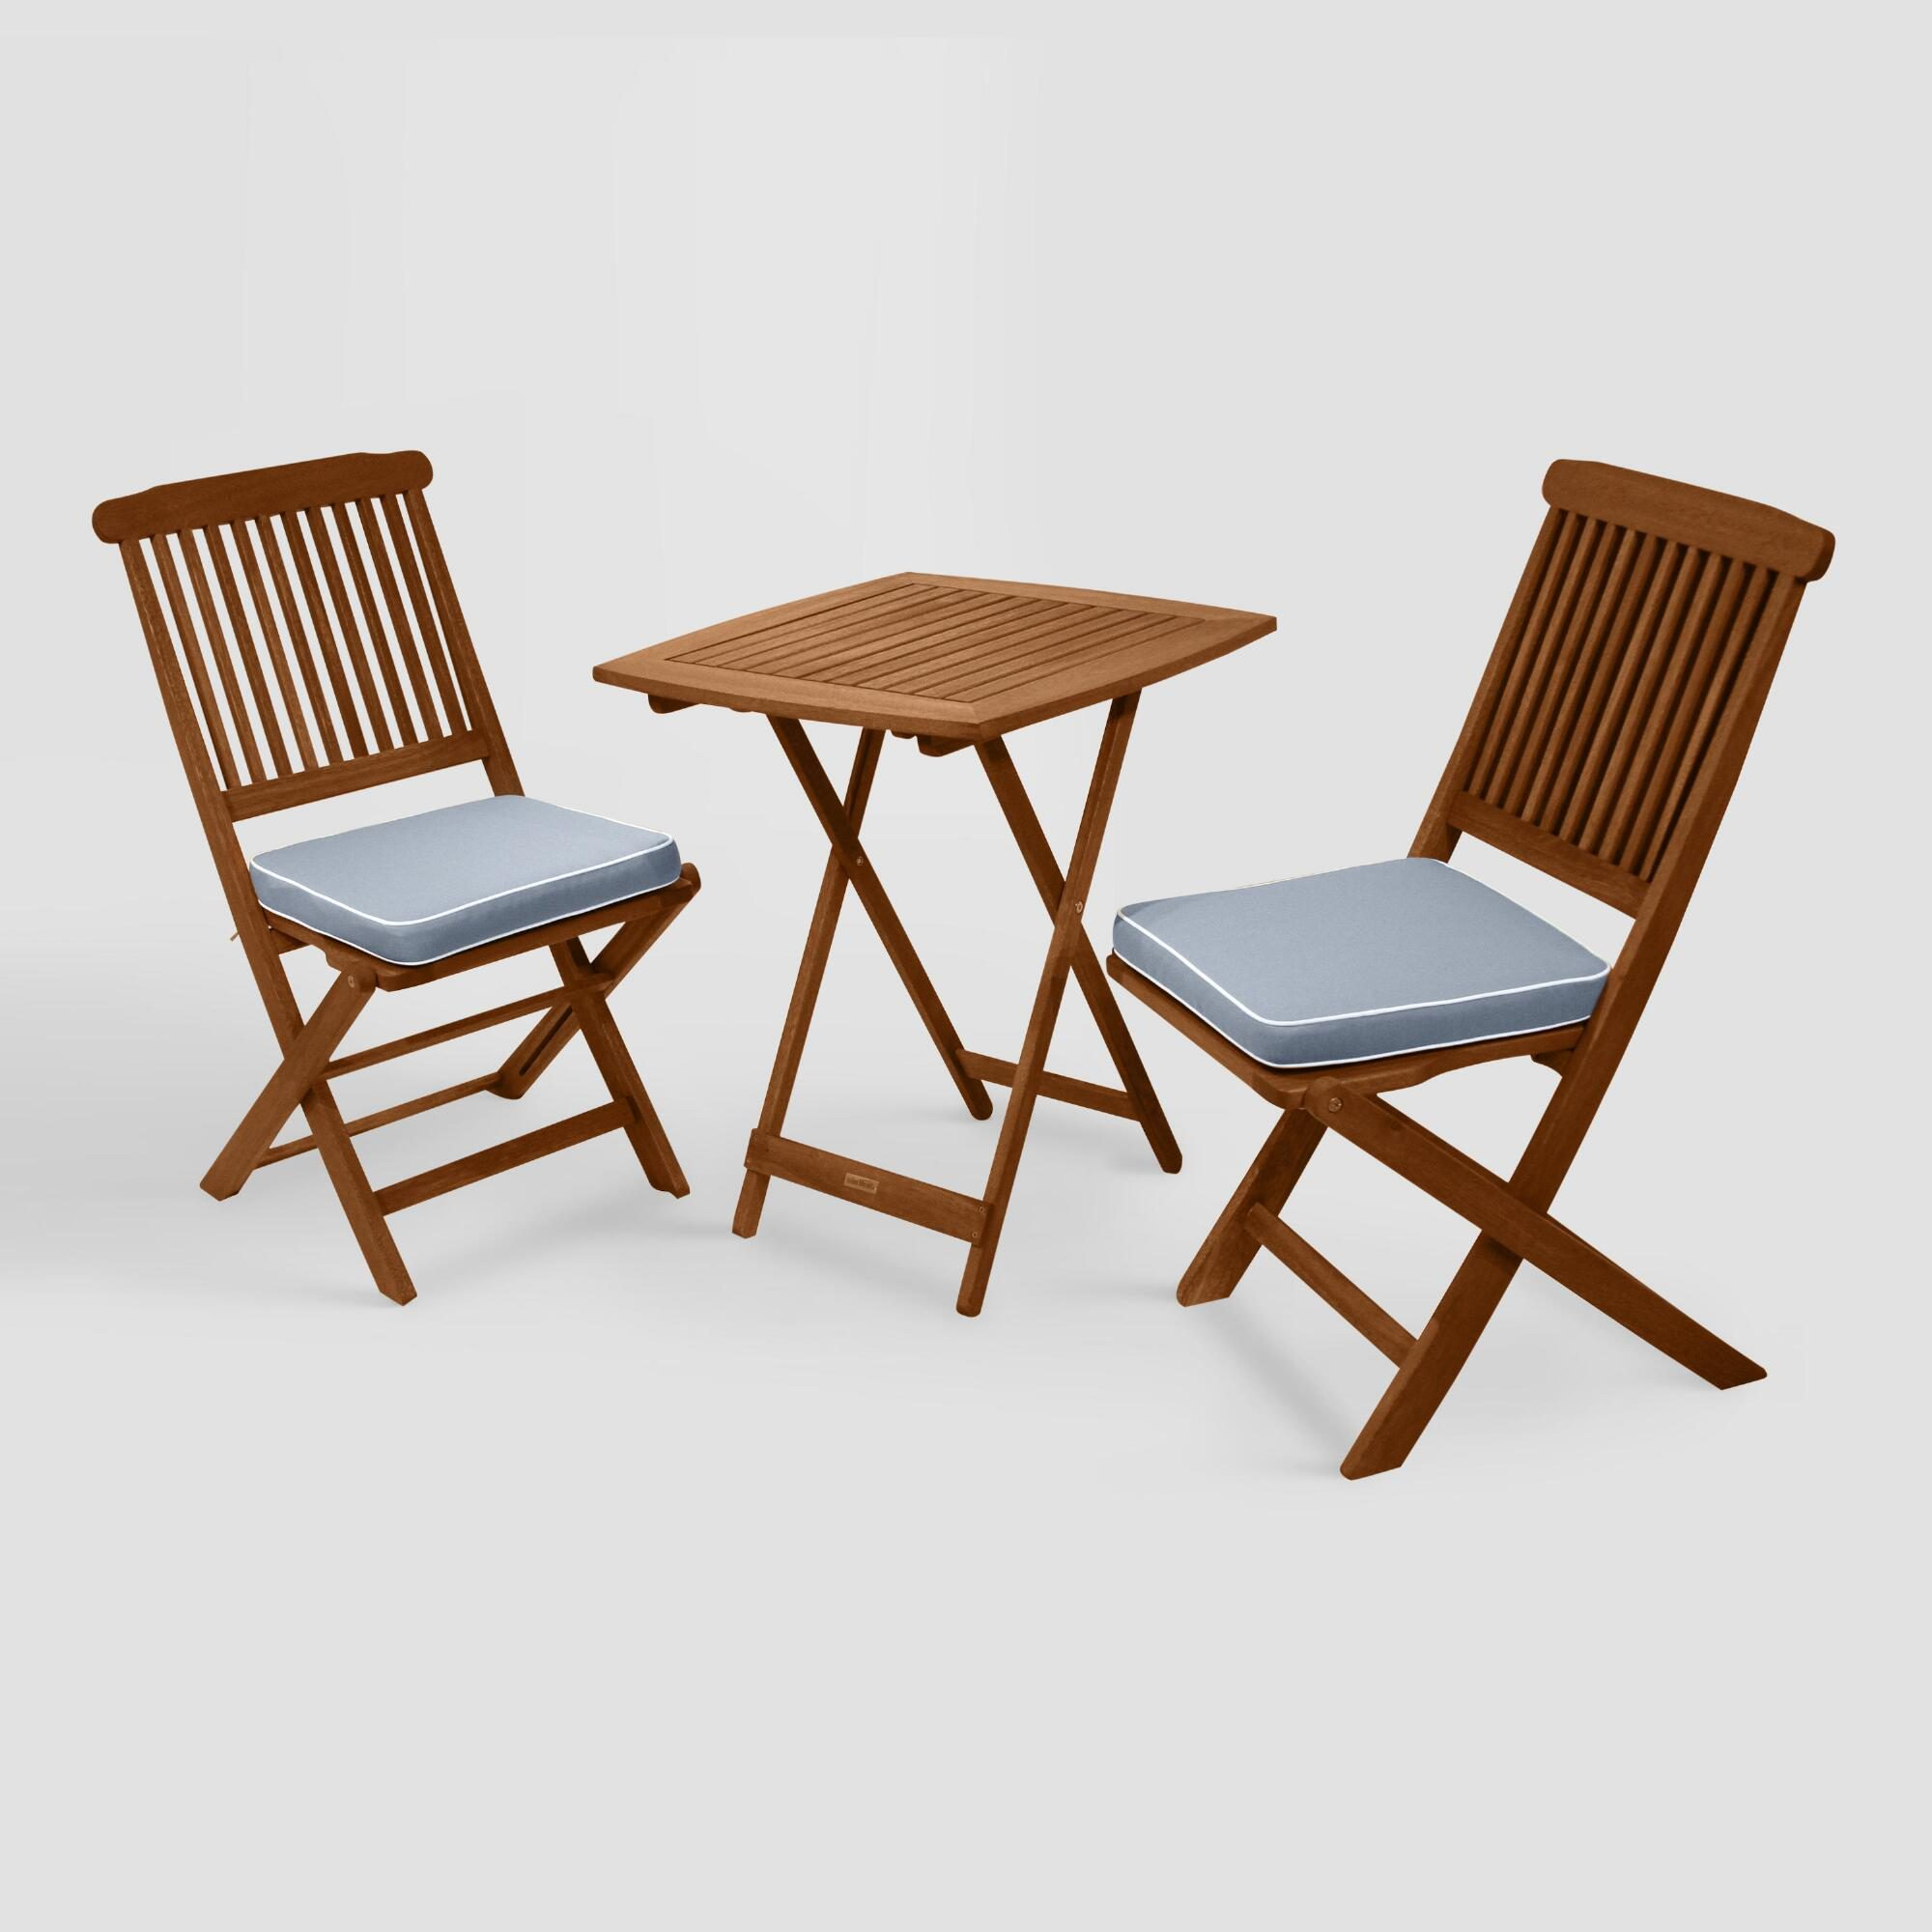 Wood Cavallo 3 Piece Outdoor Patio Bistro Set with Gray Cushions by World Market